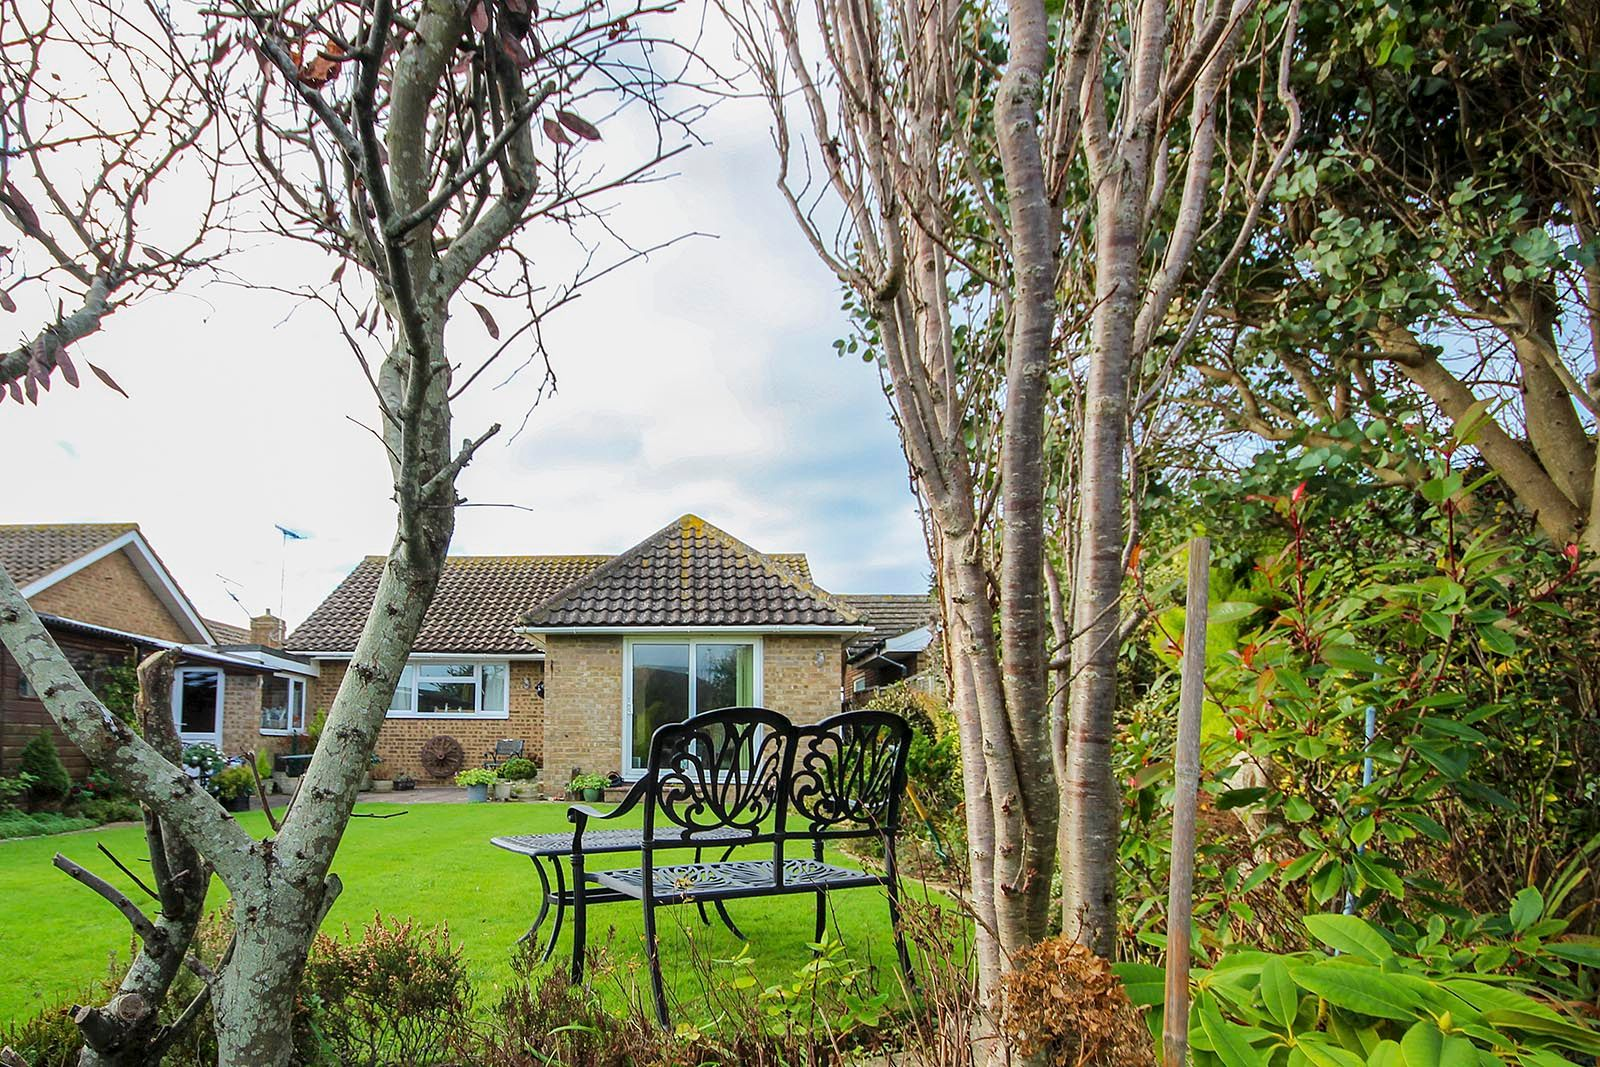 2 bed bungalow for sale in Banstead Close COMP AUG 2019 18